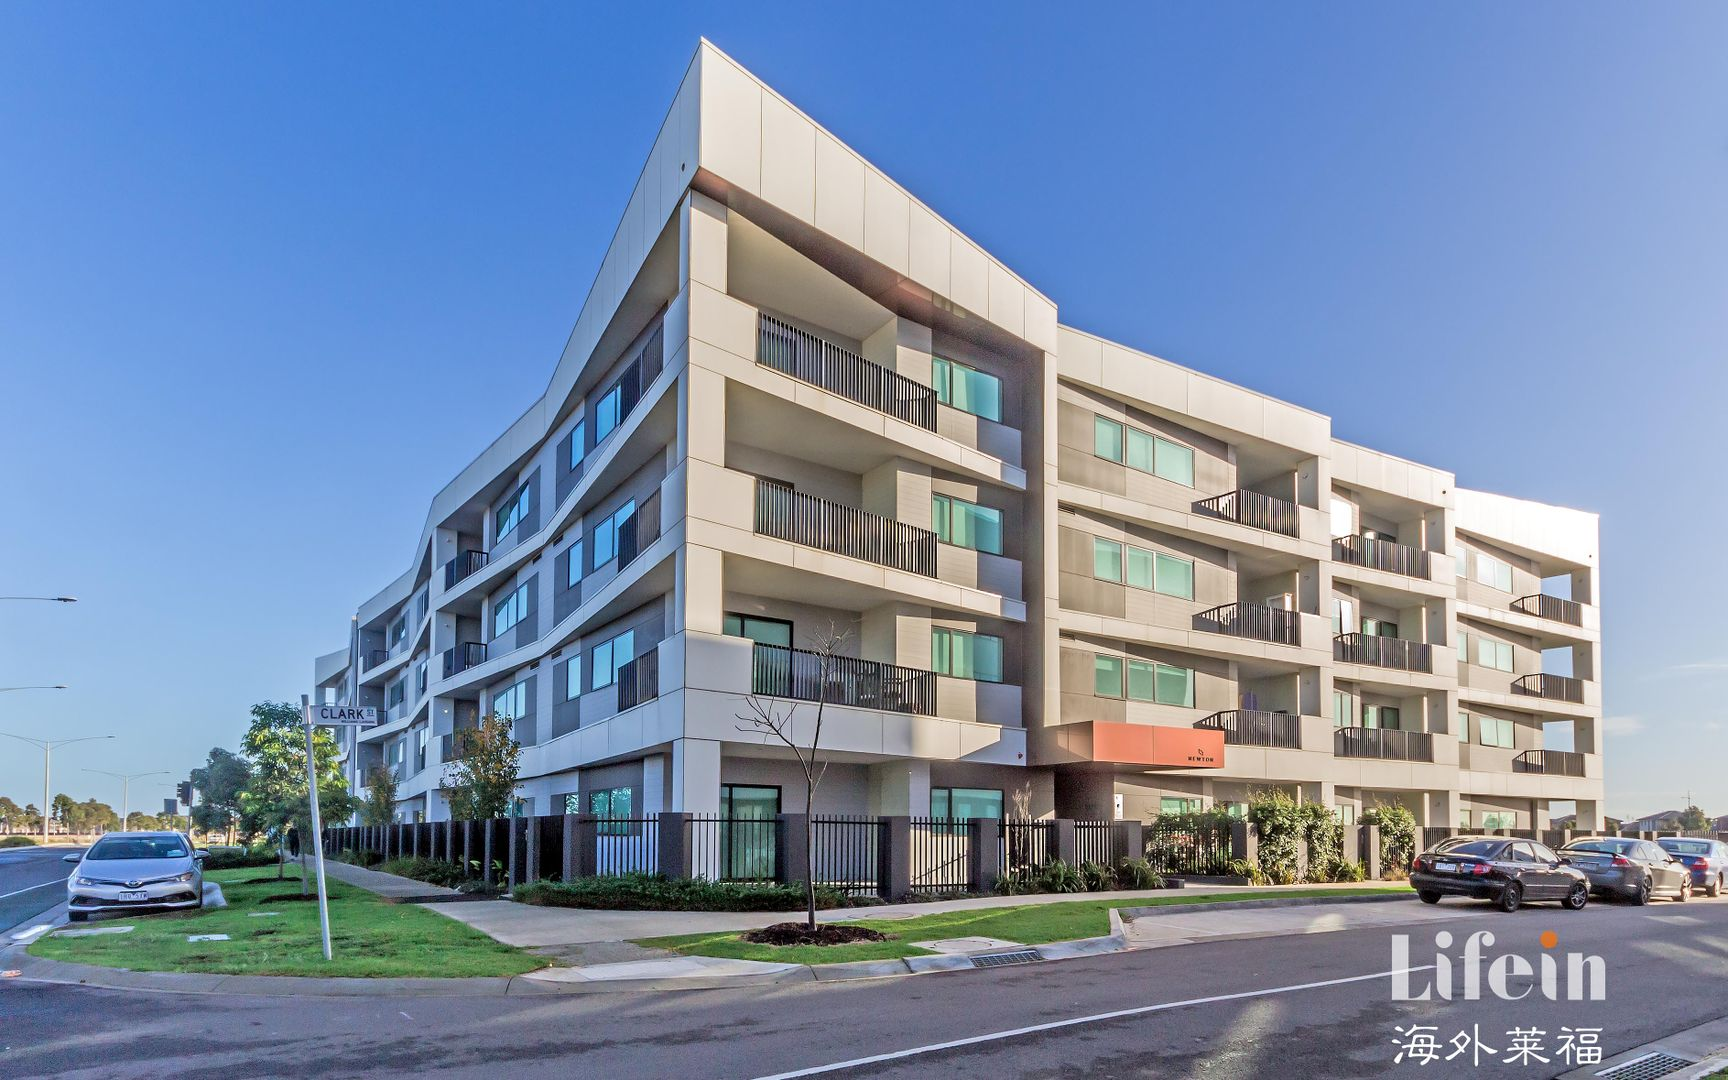 110/1 clark street, Williams Landing VIC 3027, Image 0